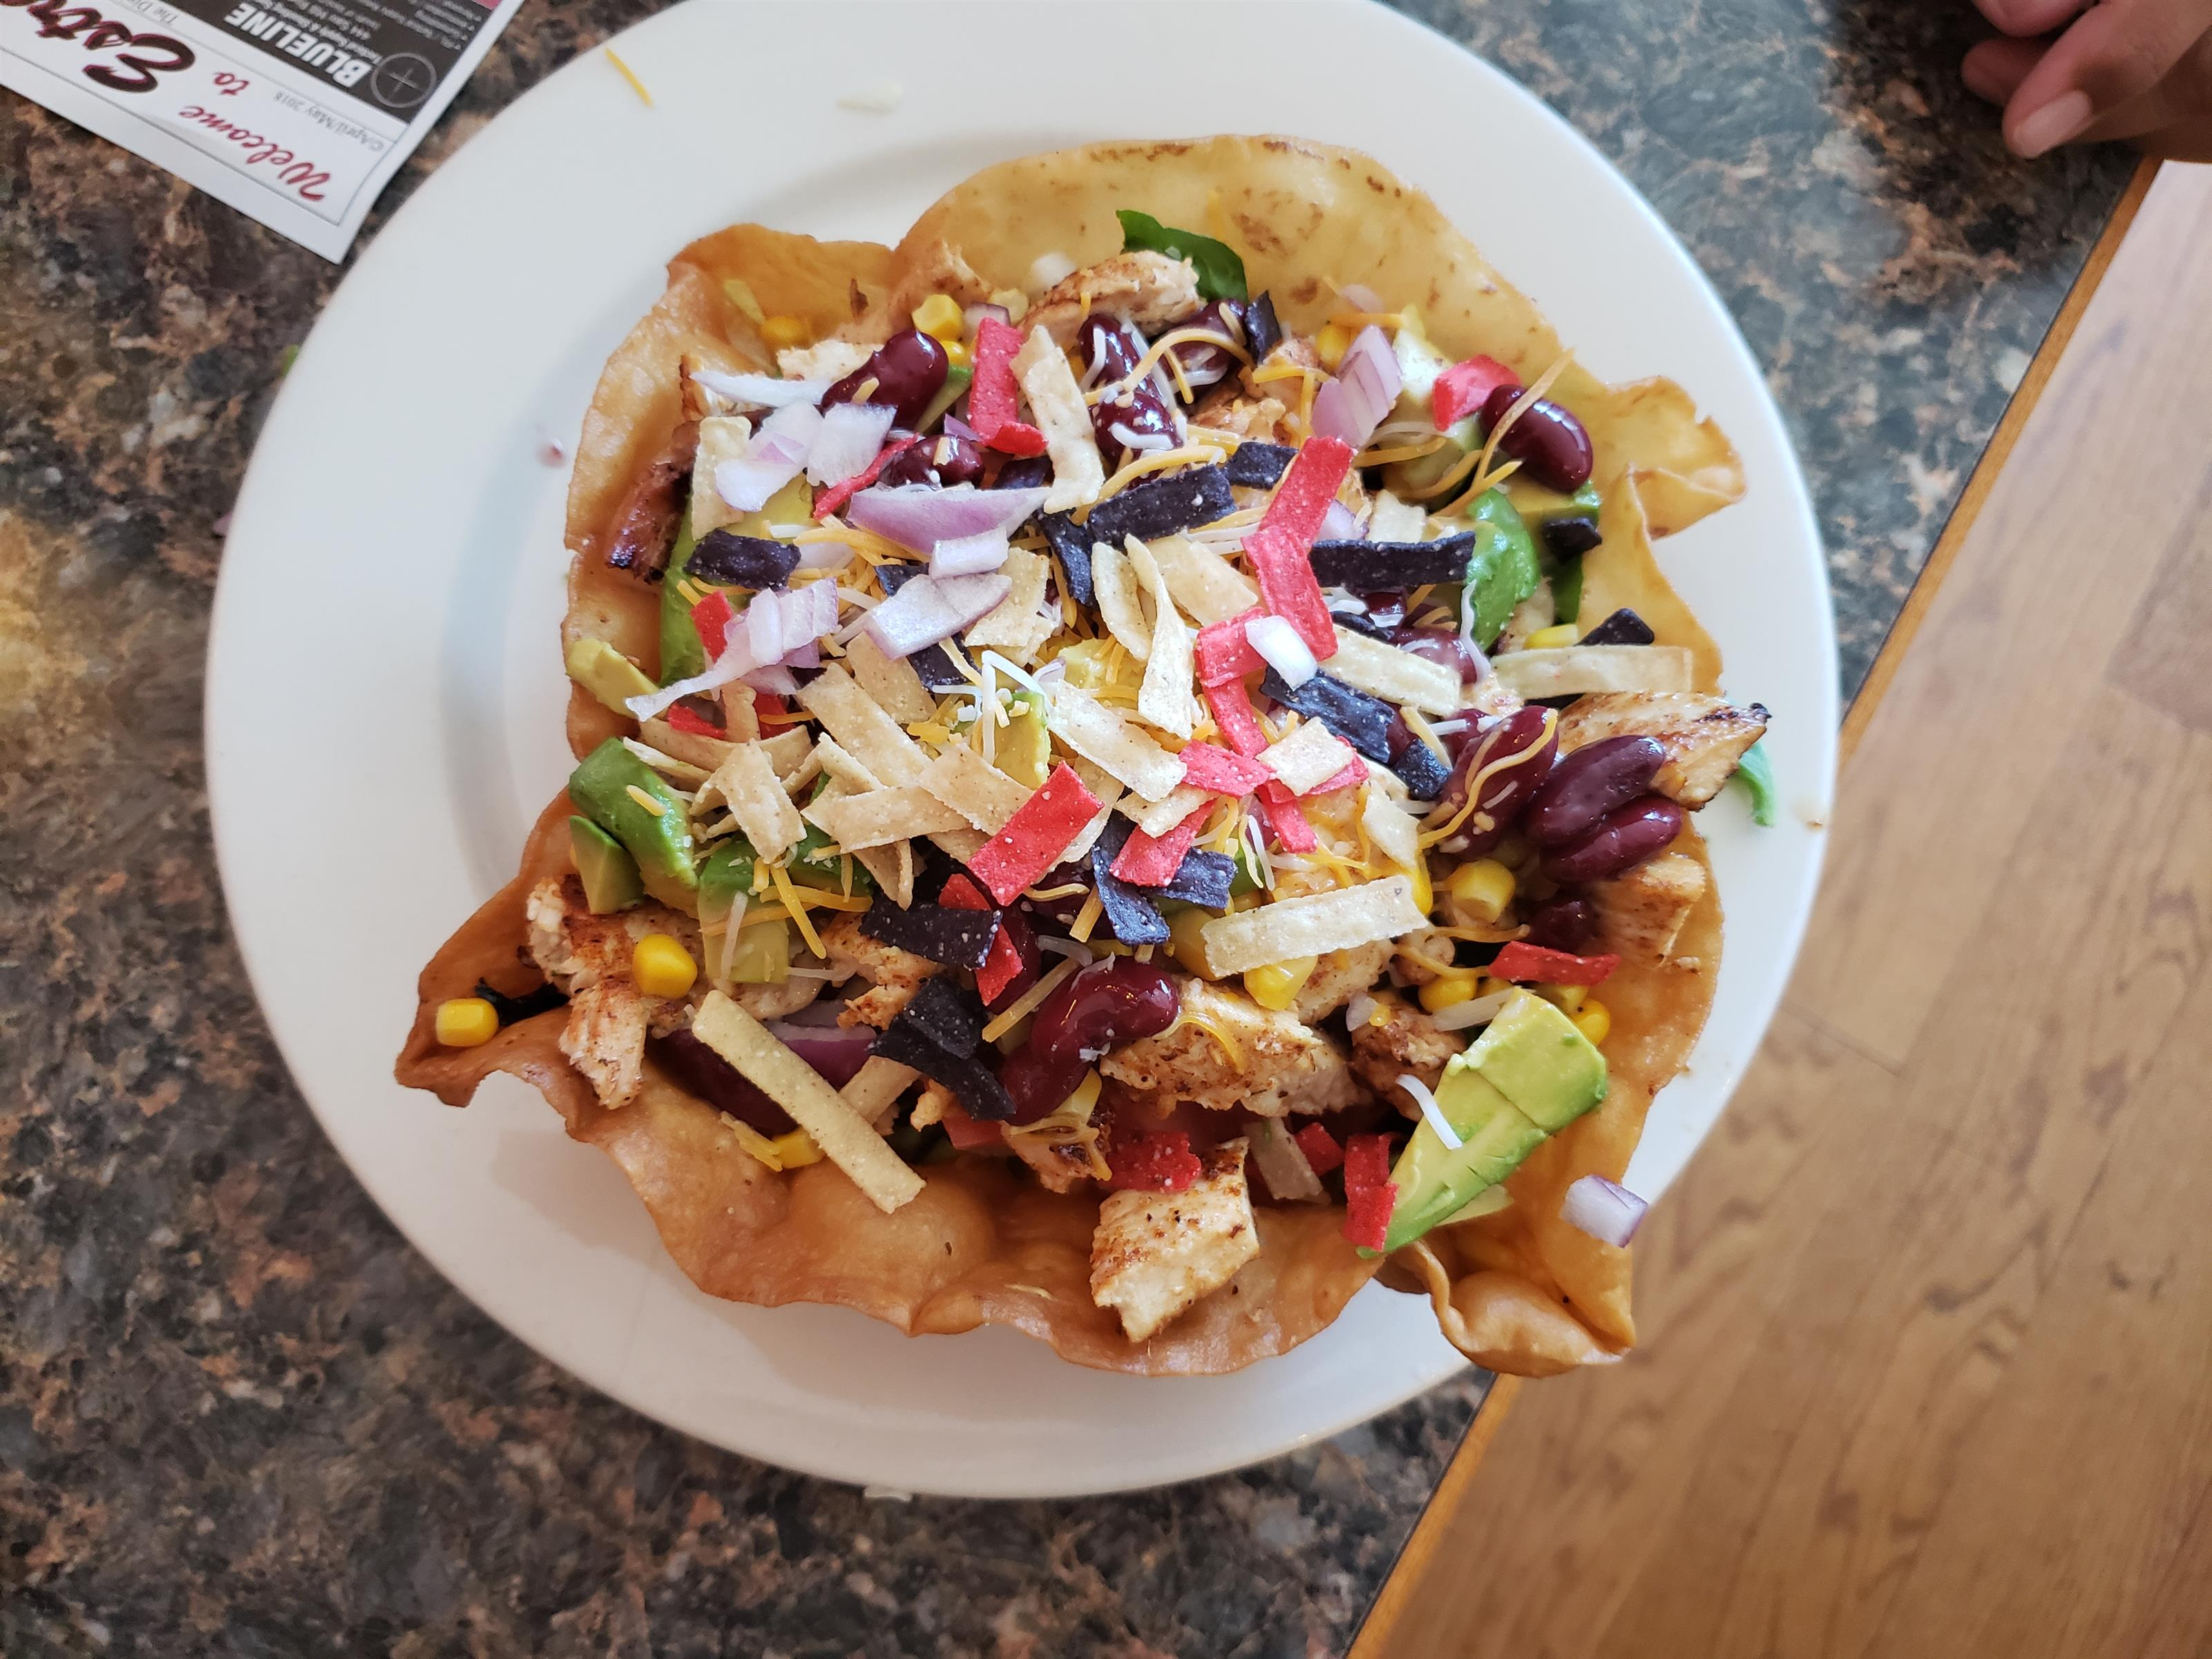 top view of the Chicken Avocado Taco Salad which includes Lettuce, tomato, cucumbers, corn, beans, cilantro & pepper jack cheese, Served in a hard shell tortilla with sour cream & guacamole